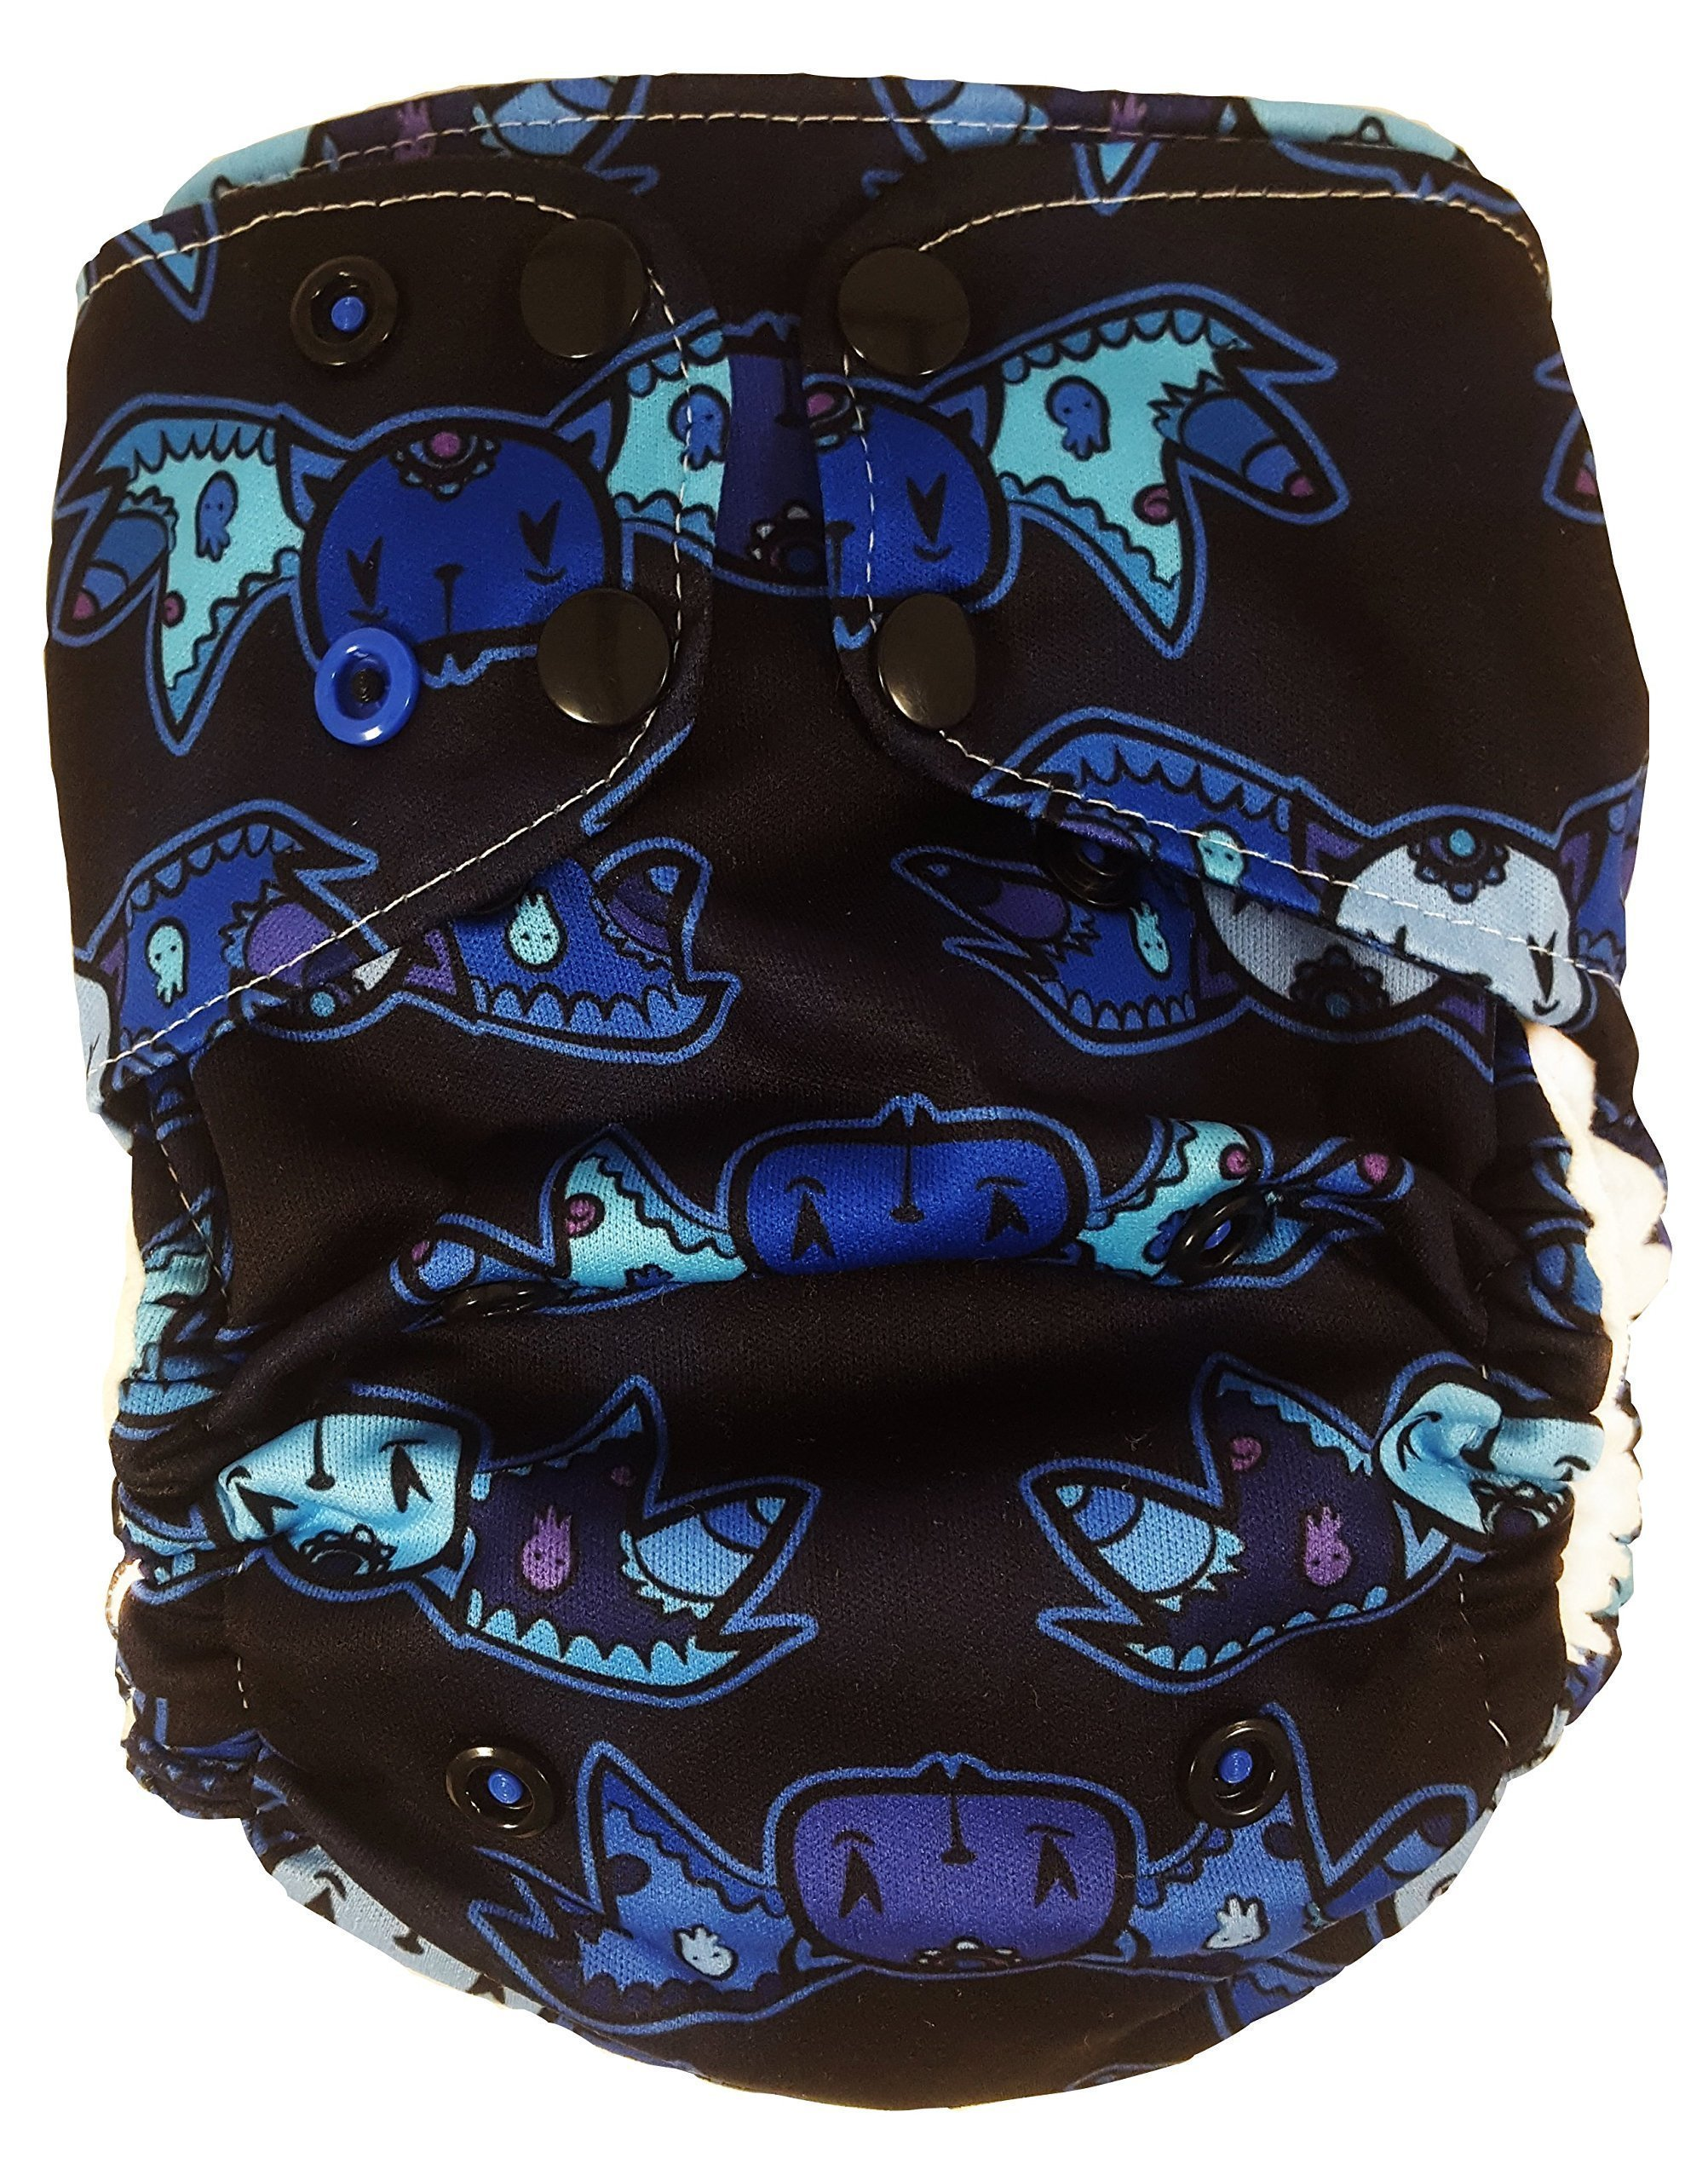 Pocket Cloth Diaper by Luke and Abby | One Size Reusable Baby Diaper - Limited Edition Moonlight Batkins Pocket Diaper